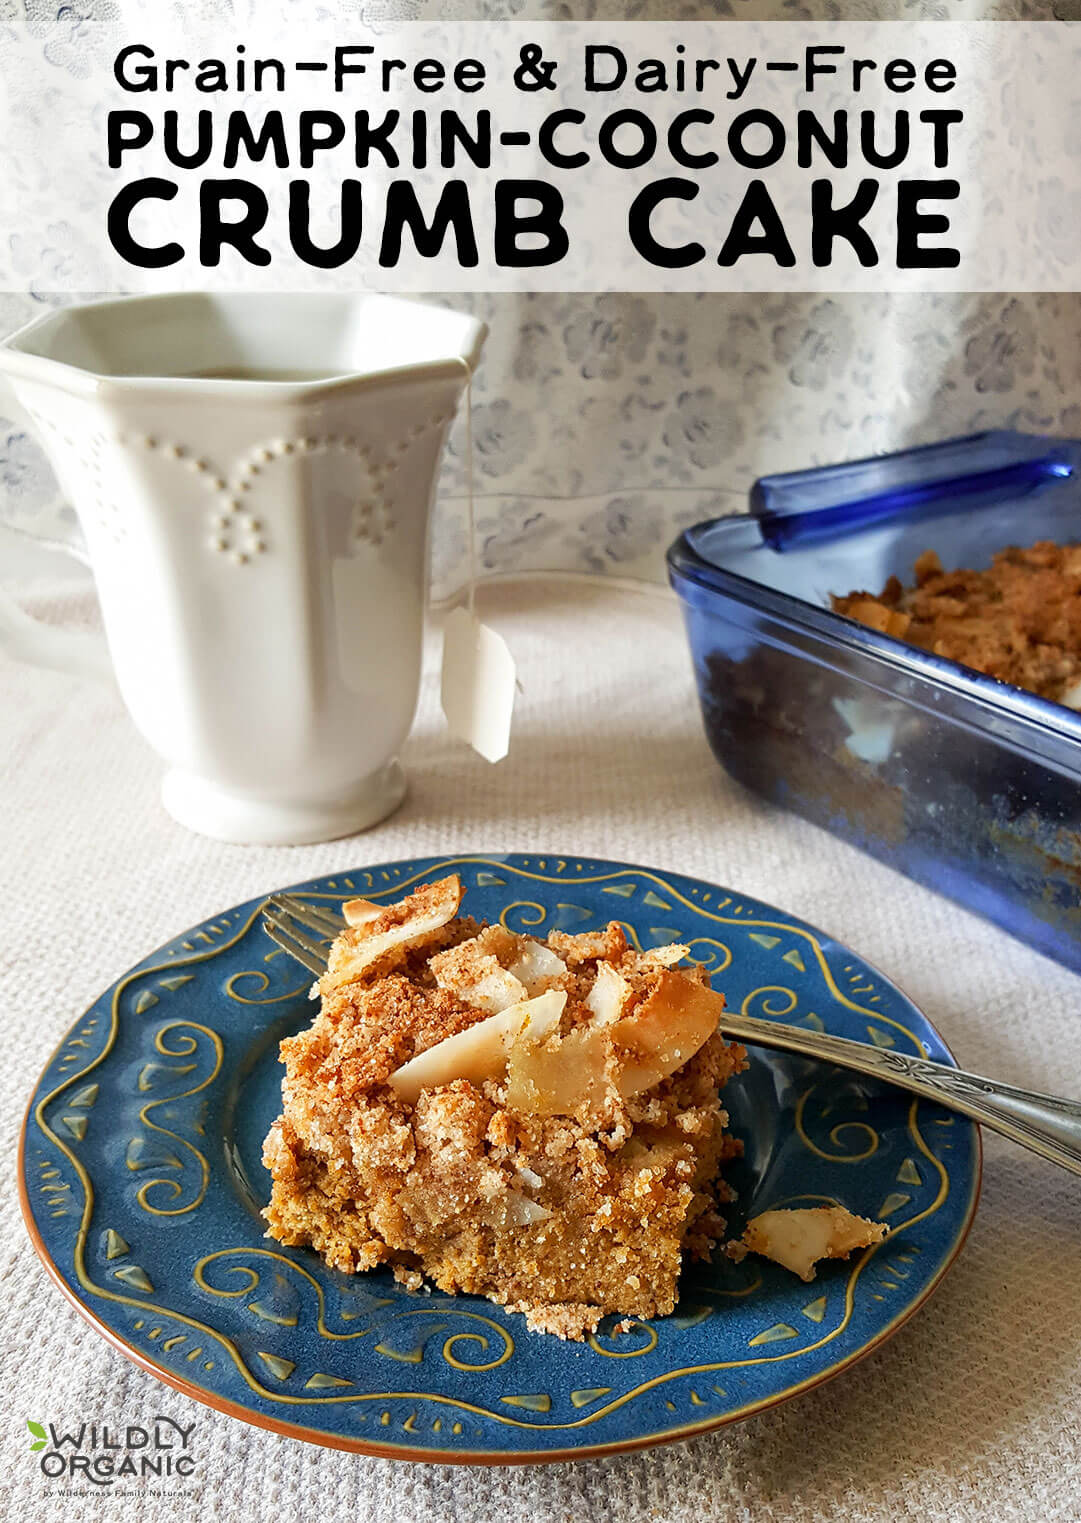 Grain-Free & Dairy-Free Pumpkin-Coconut Crumb Cake | Is there ever a time when pumpkin doesn't sound delicious? An easy, grain-free, dairy-free Pumpkin-Coconut Crumb Cake is perfect for cool fall afternoons with a hot mug of coffee or tea. Because pumpkin. Its nourishing goodness knows no seasonal limits. | WildlyOrganic.com